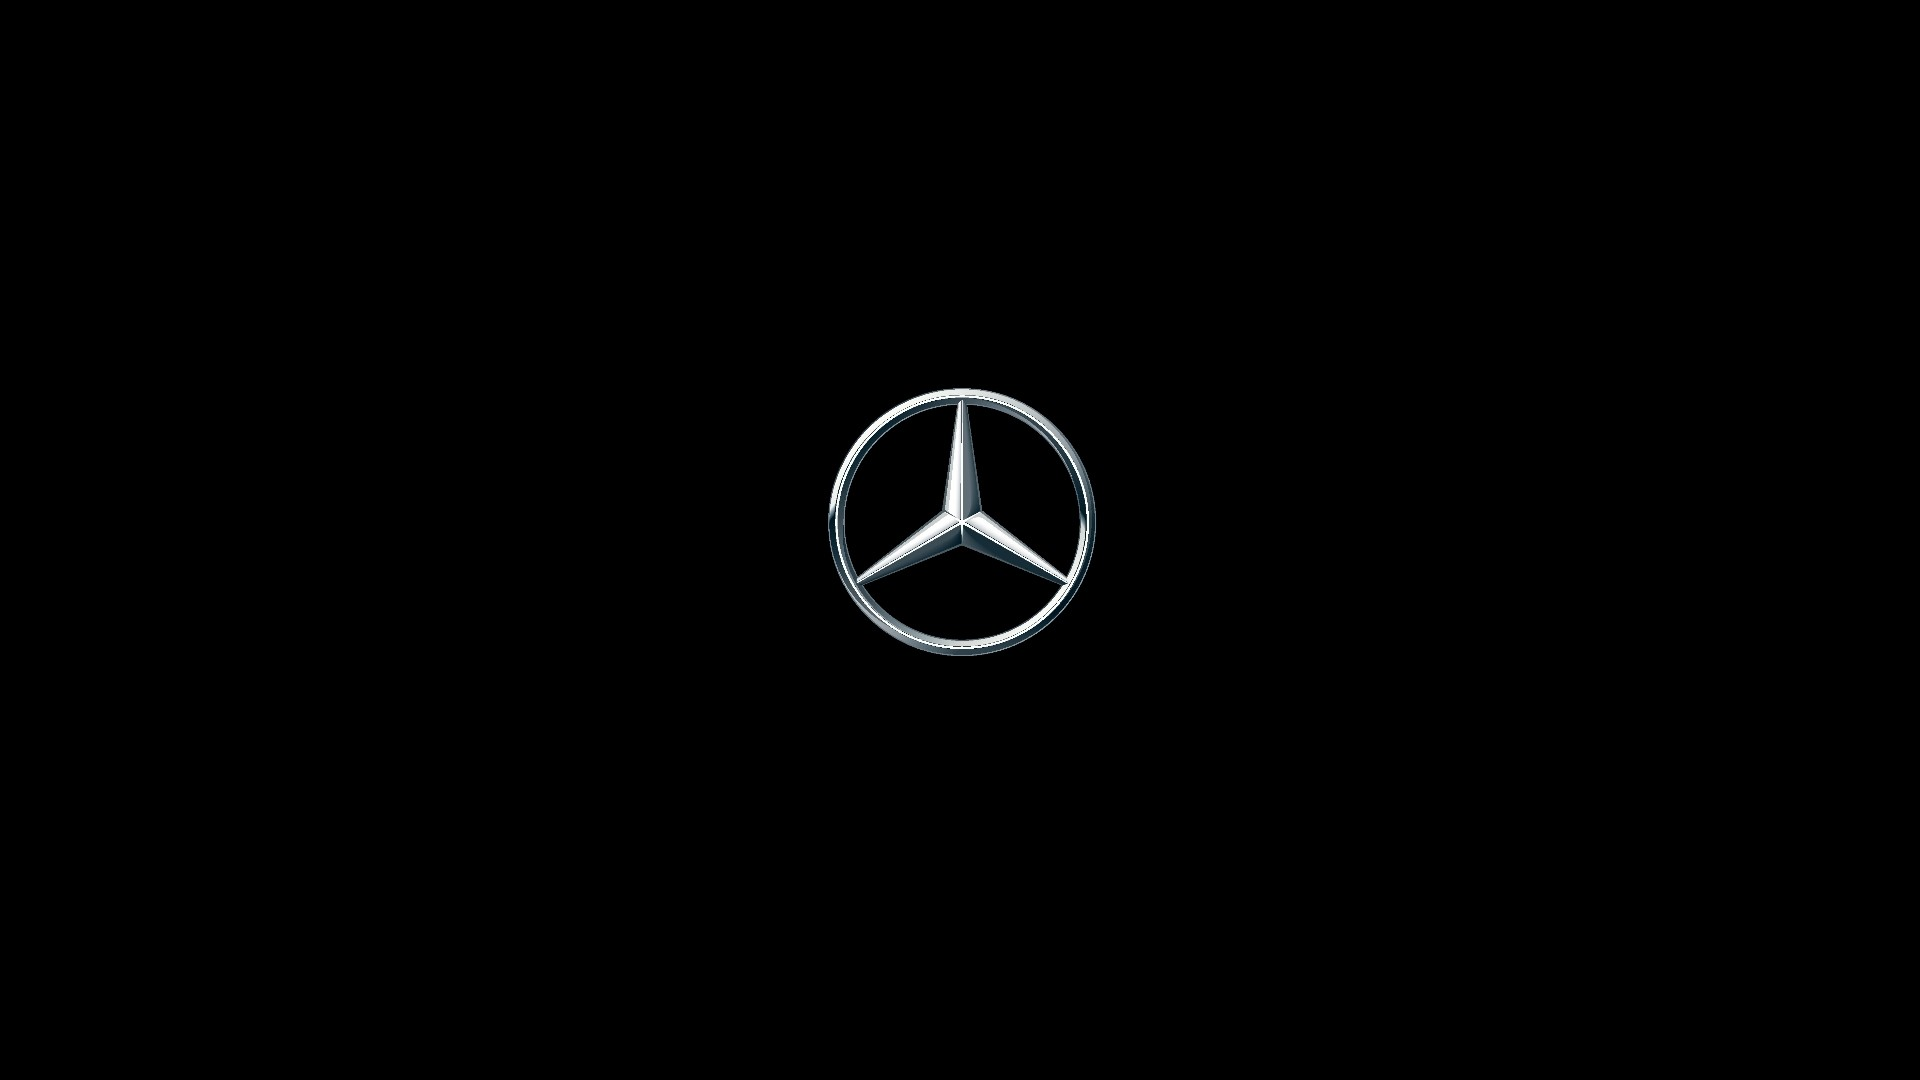 Mercedes Benz Logo Wallpapers 53 images 1920x1080